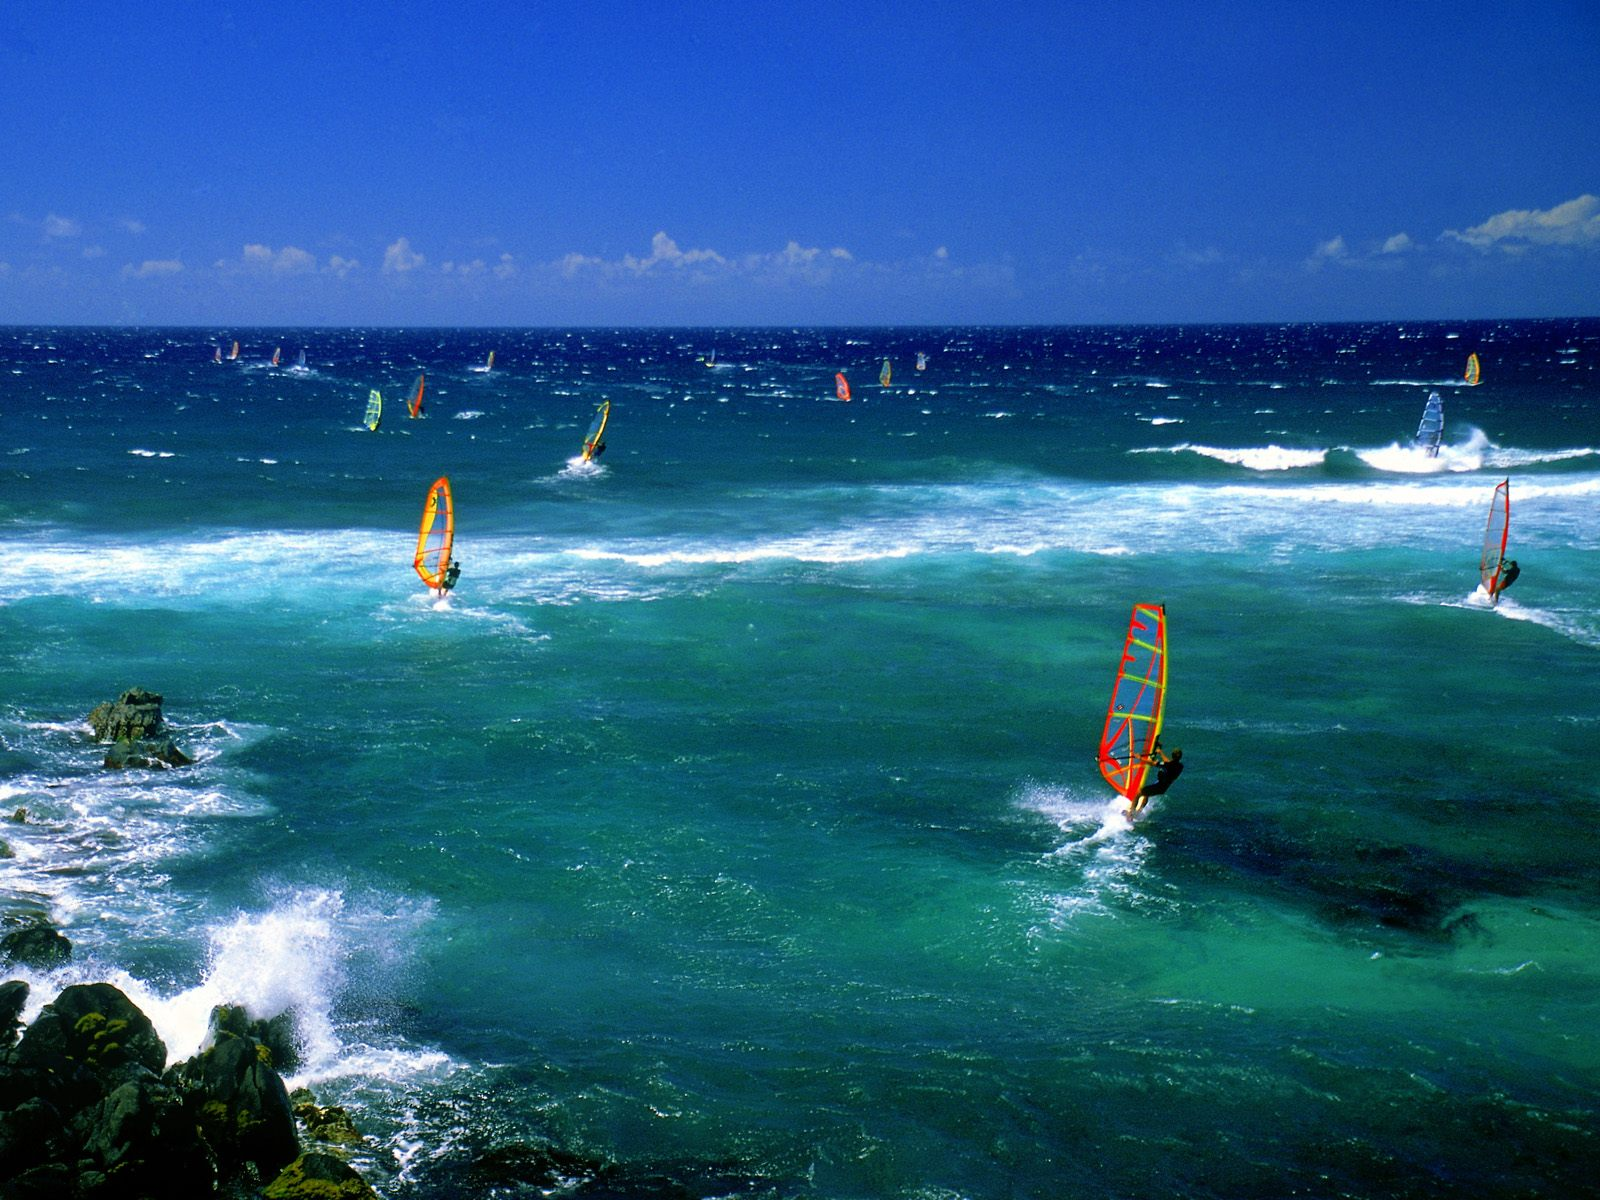 surfing images windsurfers - maui hd wallpaper and background photos